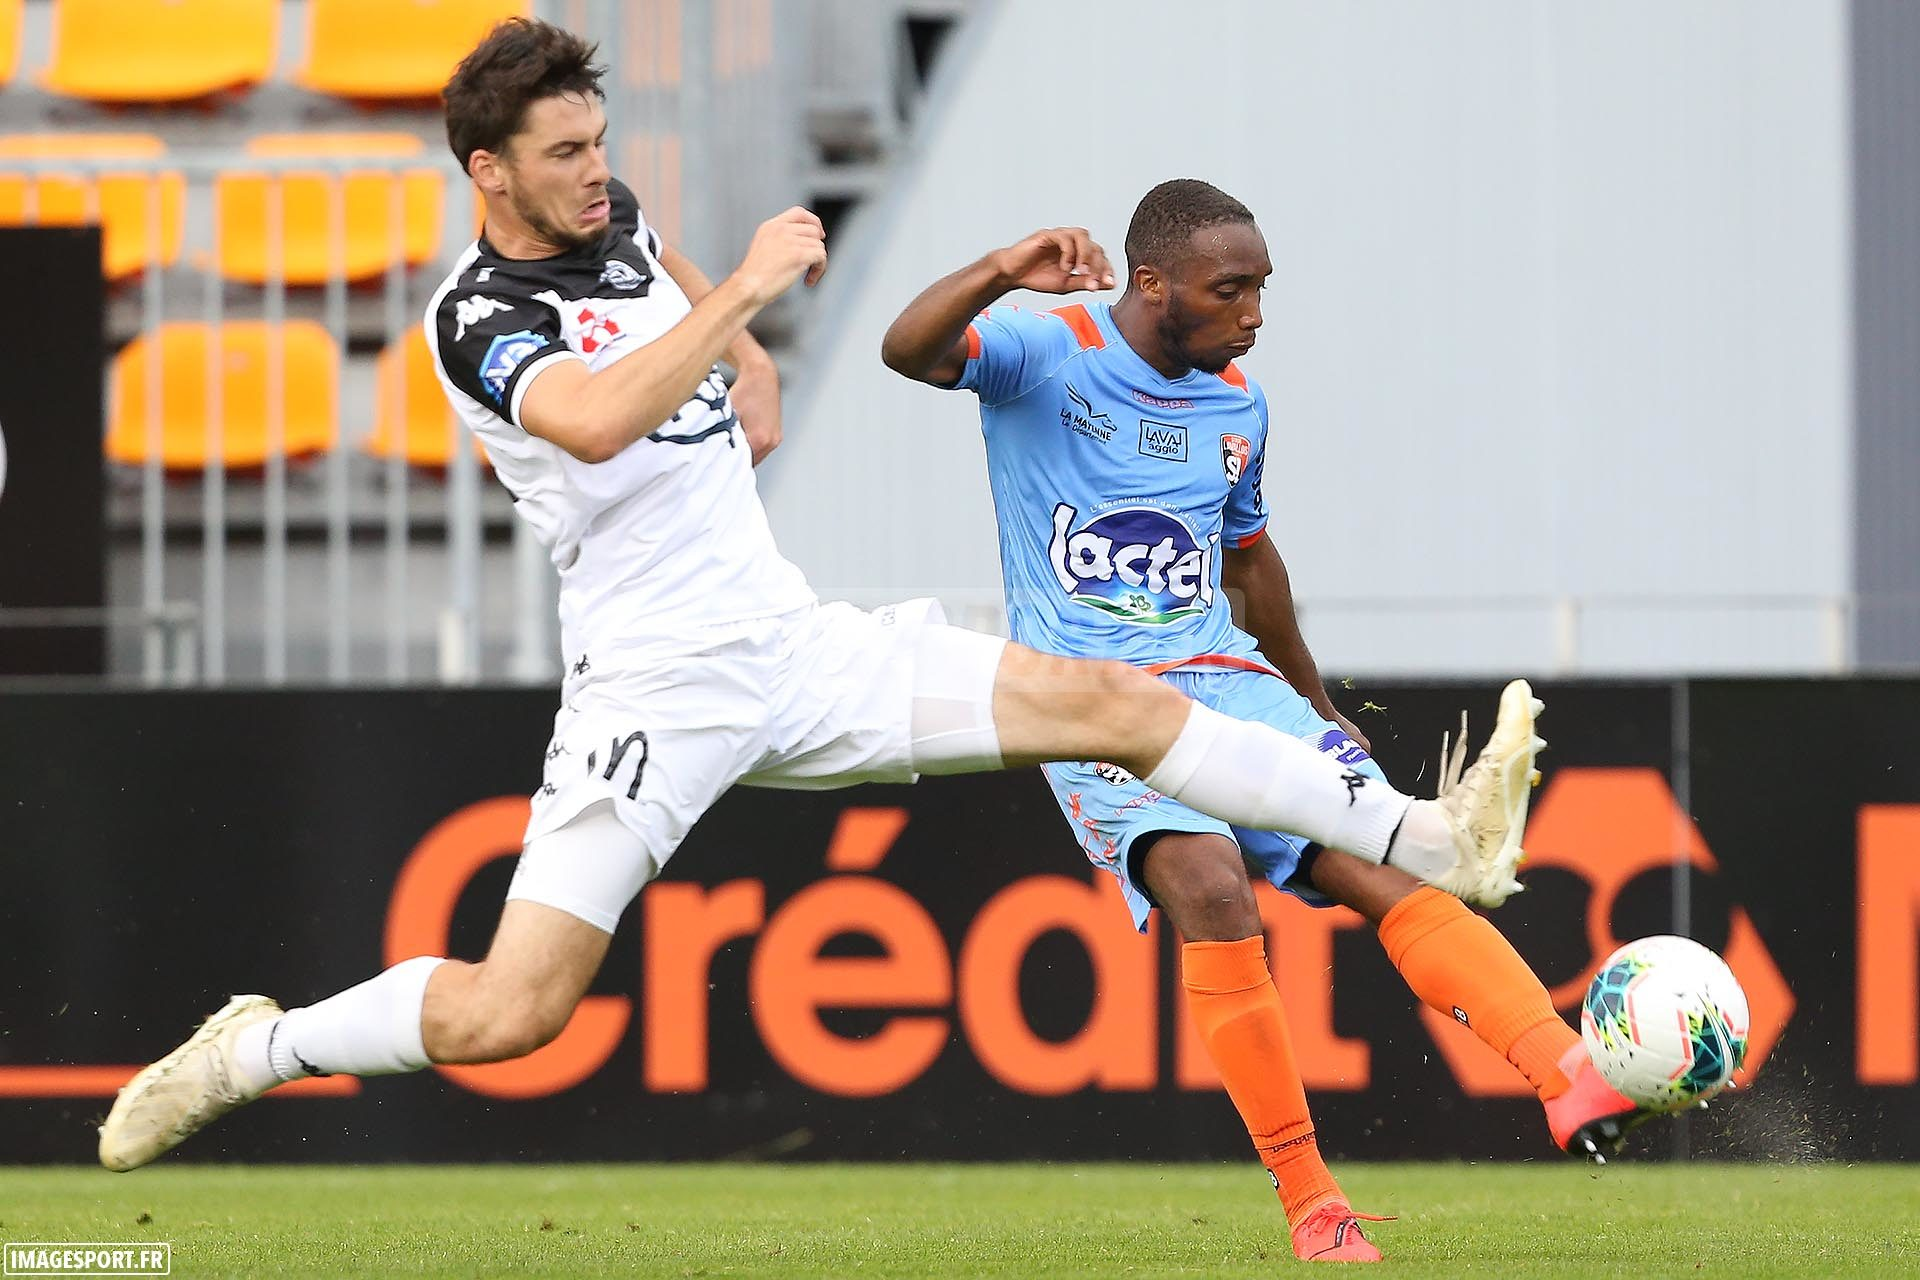 A droite : Ludovic SOARES (Stade Lavallois)